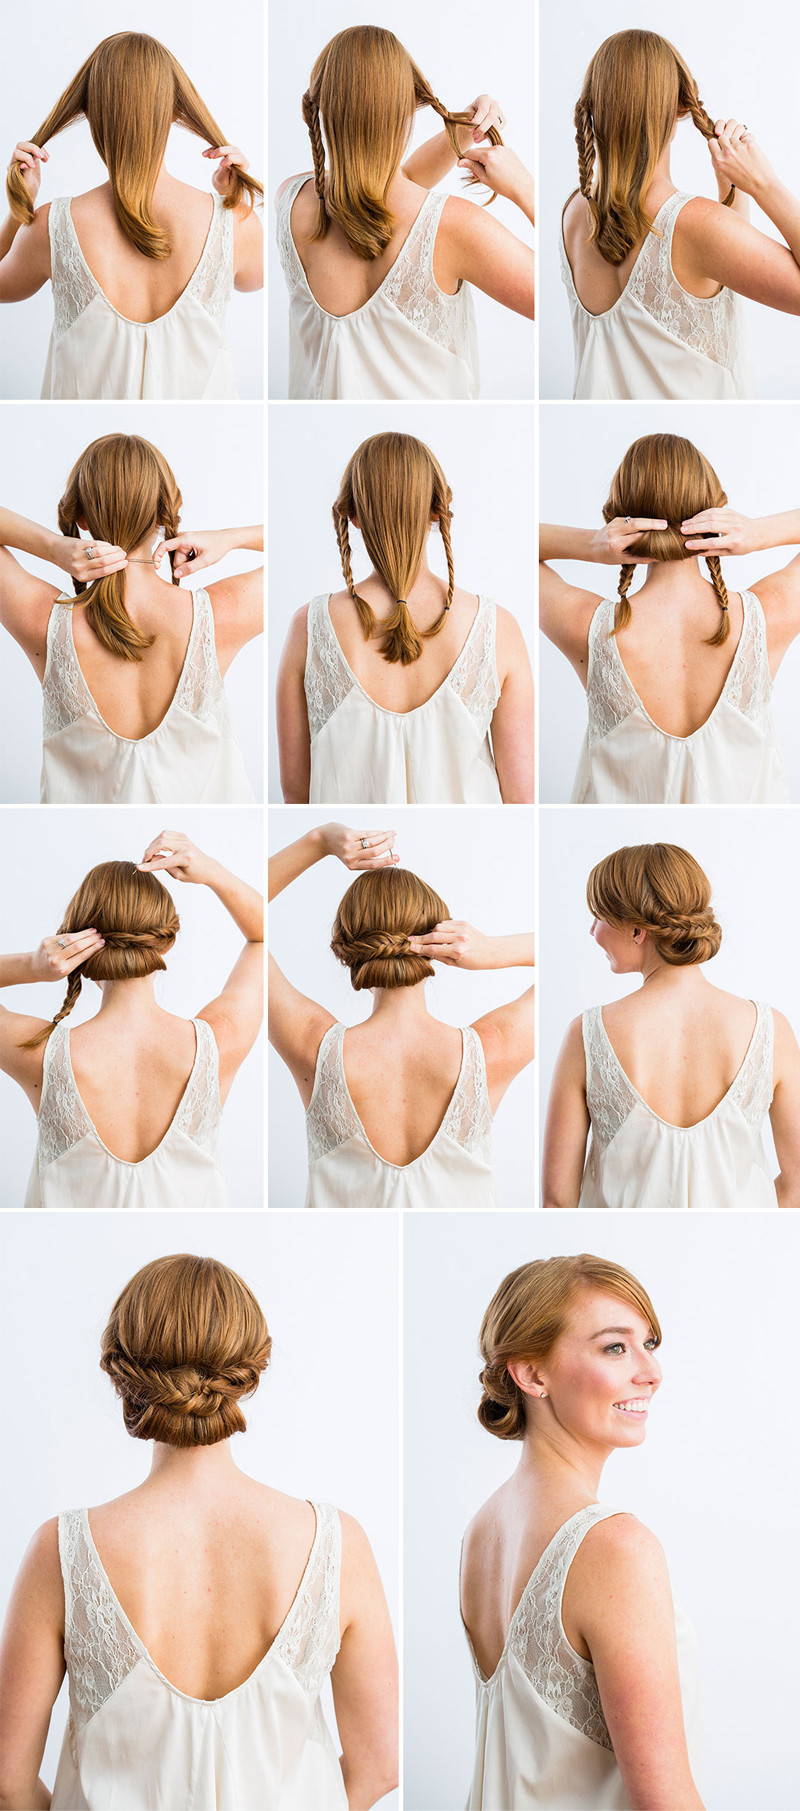 Best ideas about DIY Wedding Updo . Save or Pin 10 Best DIY Wedding Hairstyles with Tutorials Now.